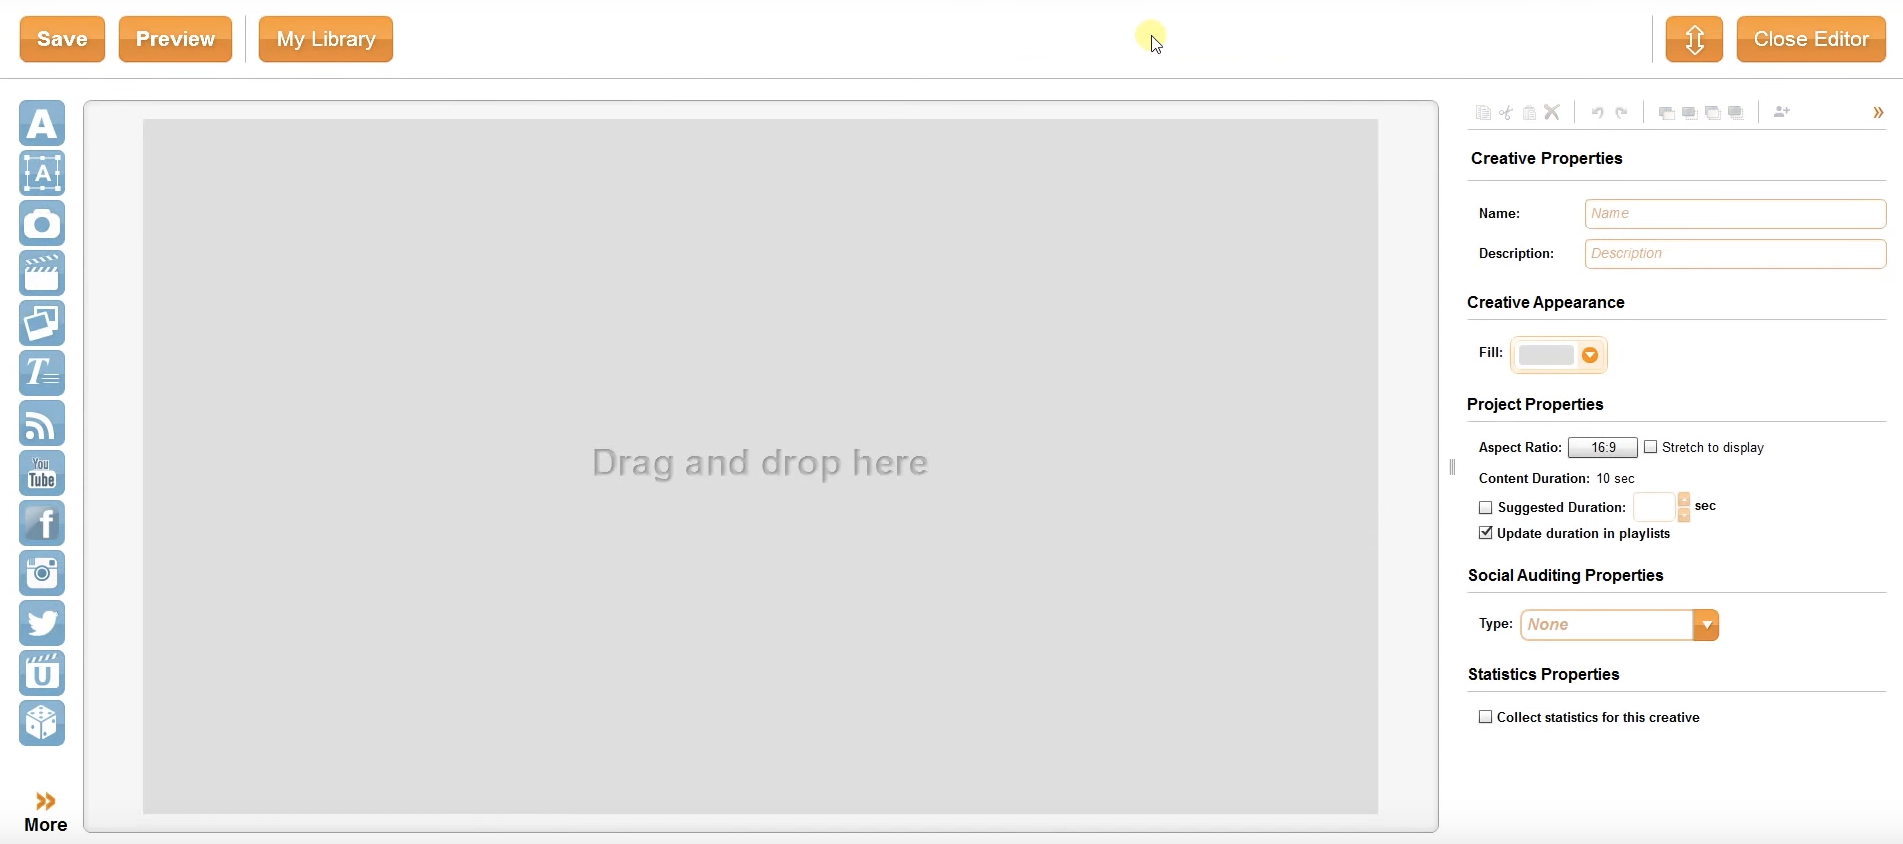 Users can create slides using the drag-and-drop editor